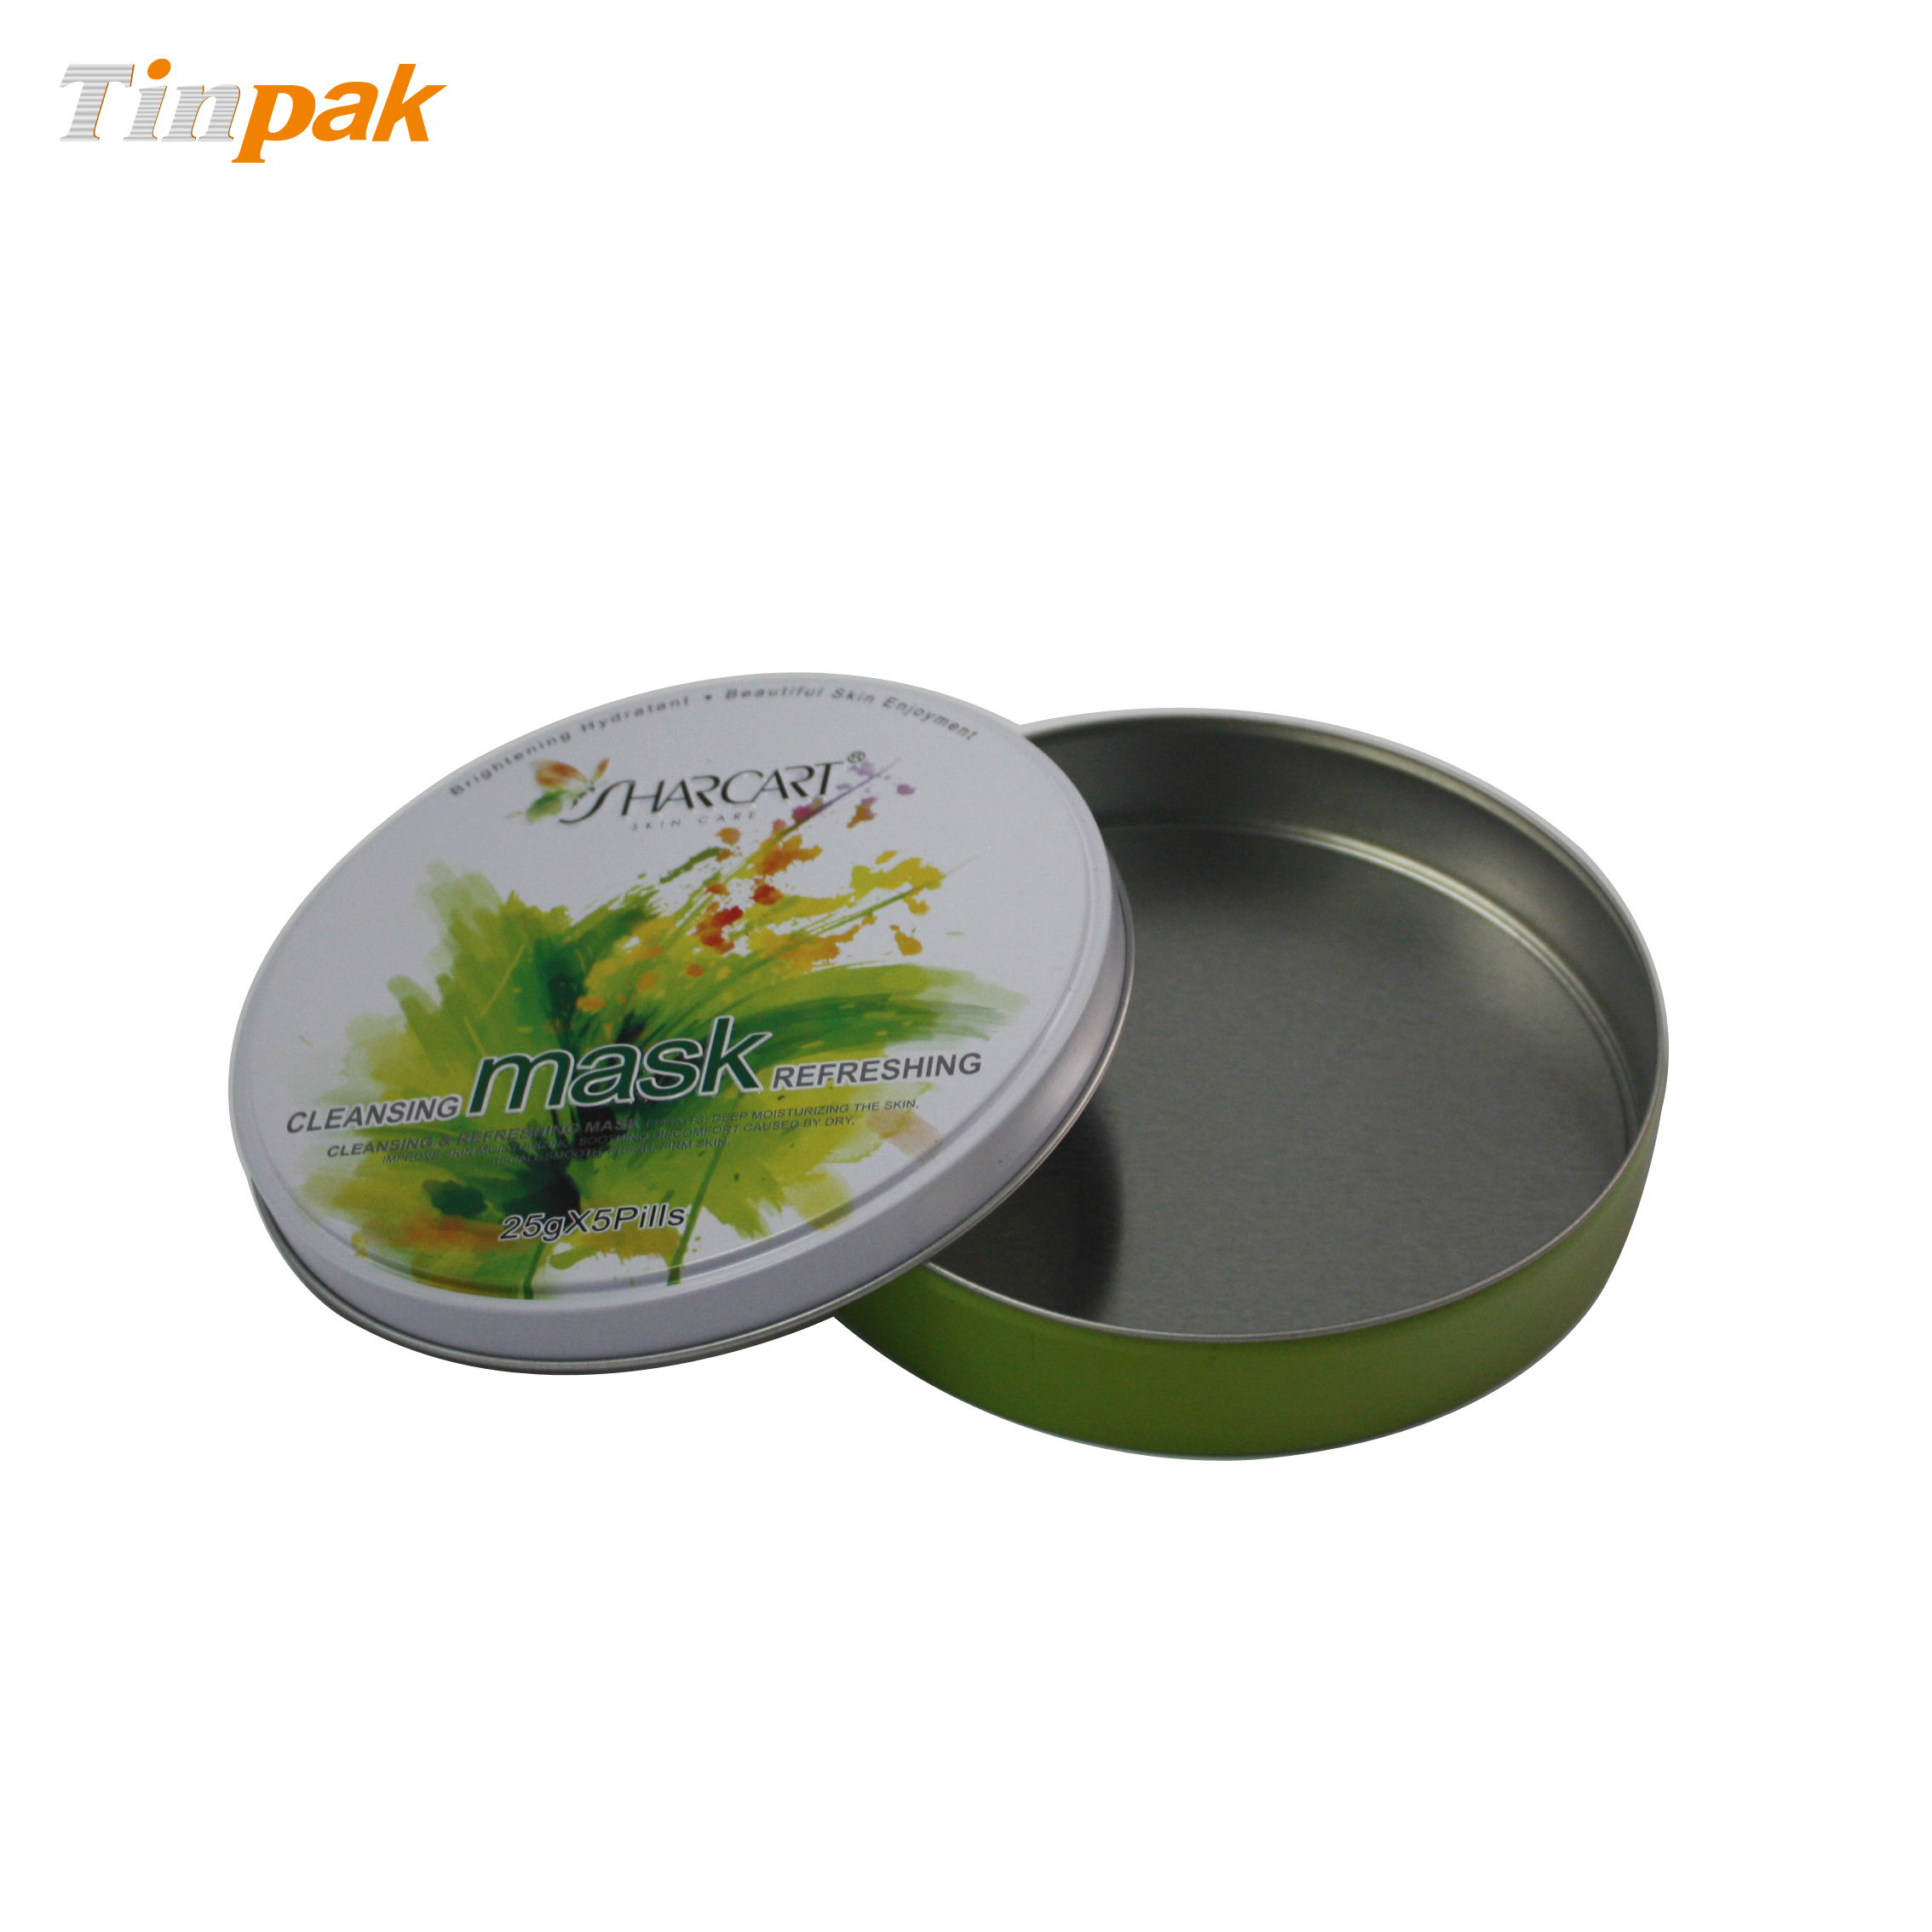 Round cosmetic tins